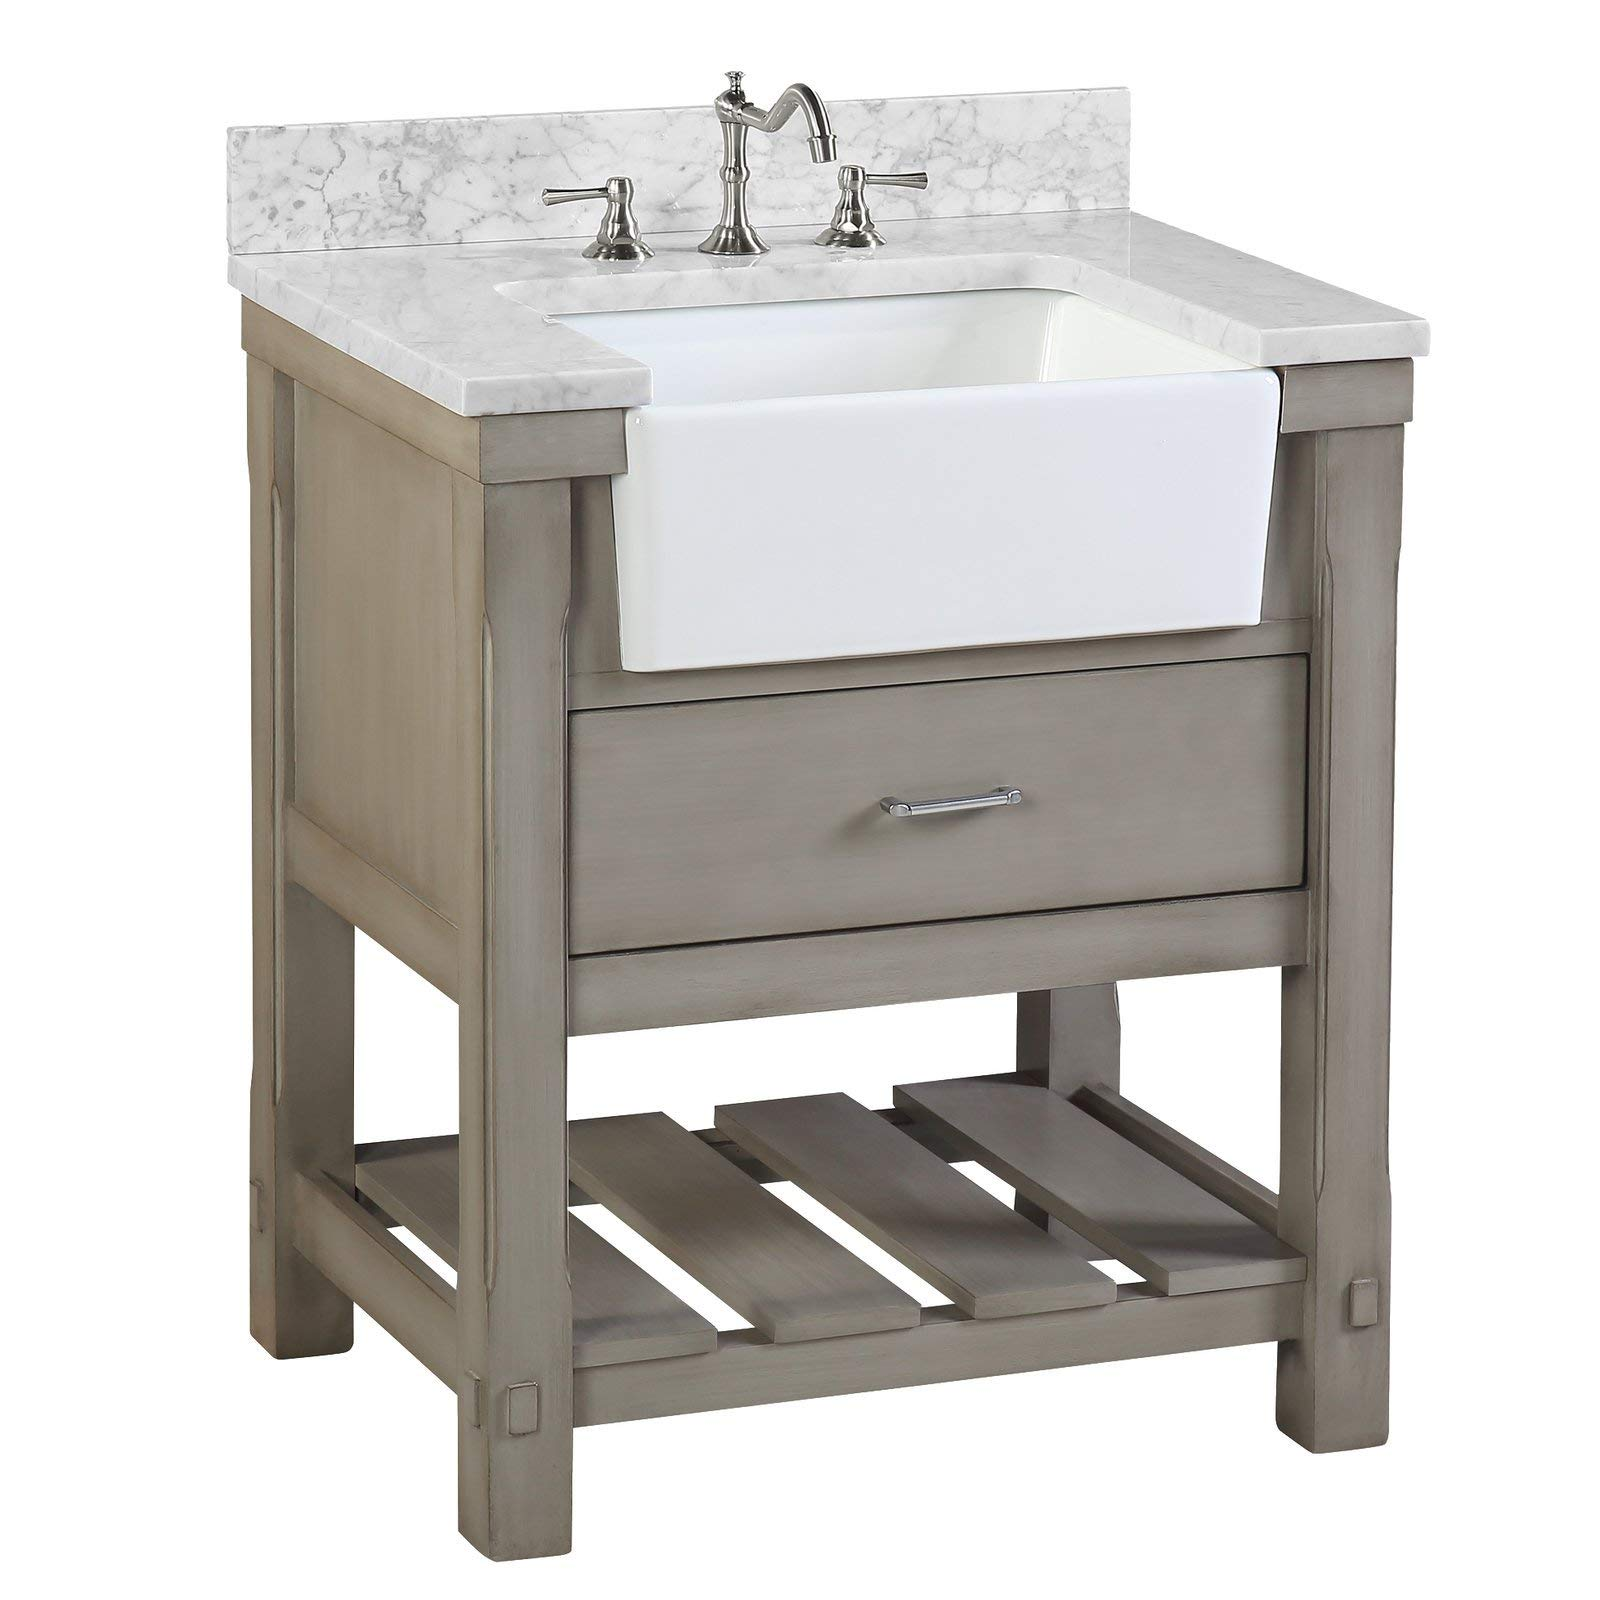 Amazon Com Charlotte 30 Inch Bathroom Vanity Carrara Weathered Gray Includes Weathered Gray Cabinet With Authentic Italian Carrara Marble Countertop And White Ceramic Farmhouse Apron Sink Kitchen Dining